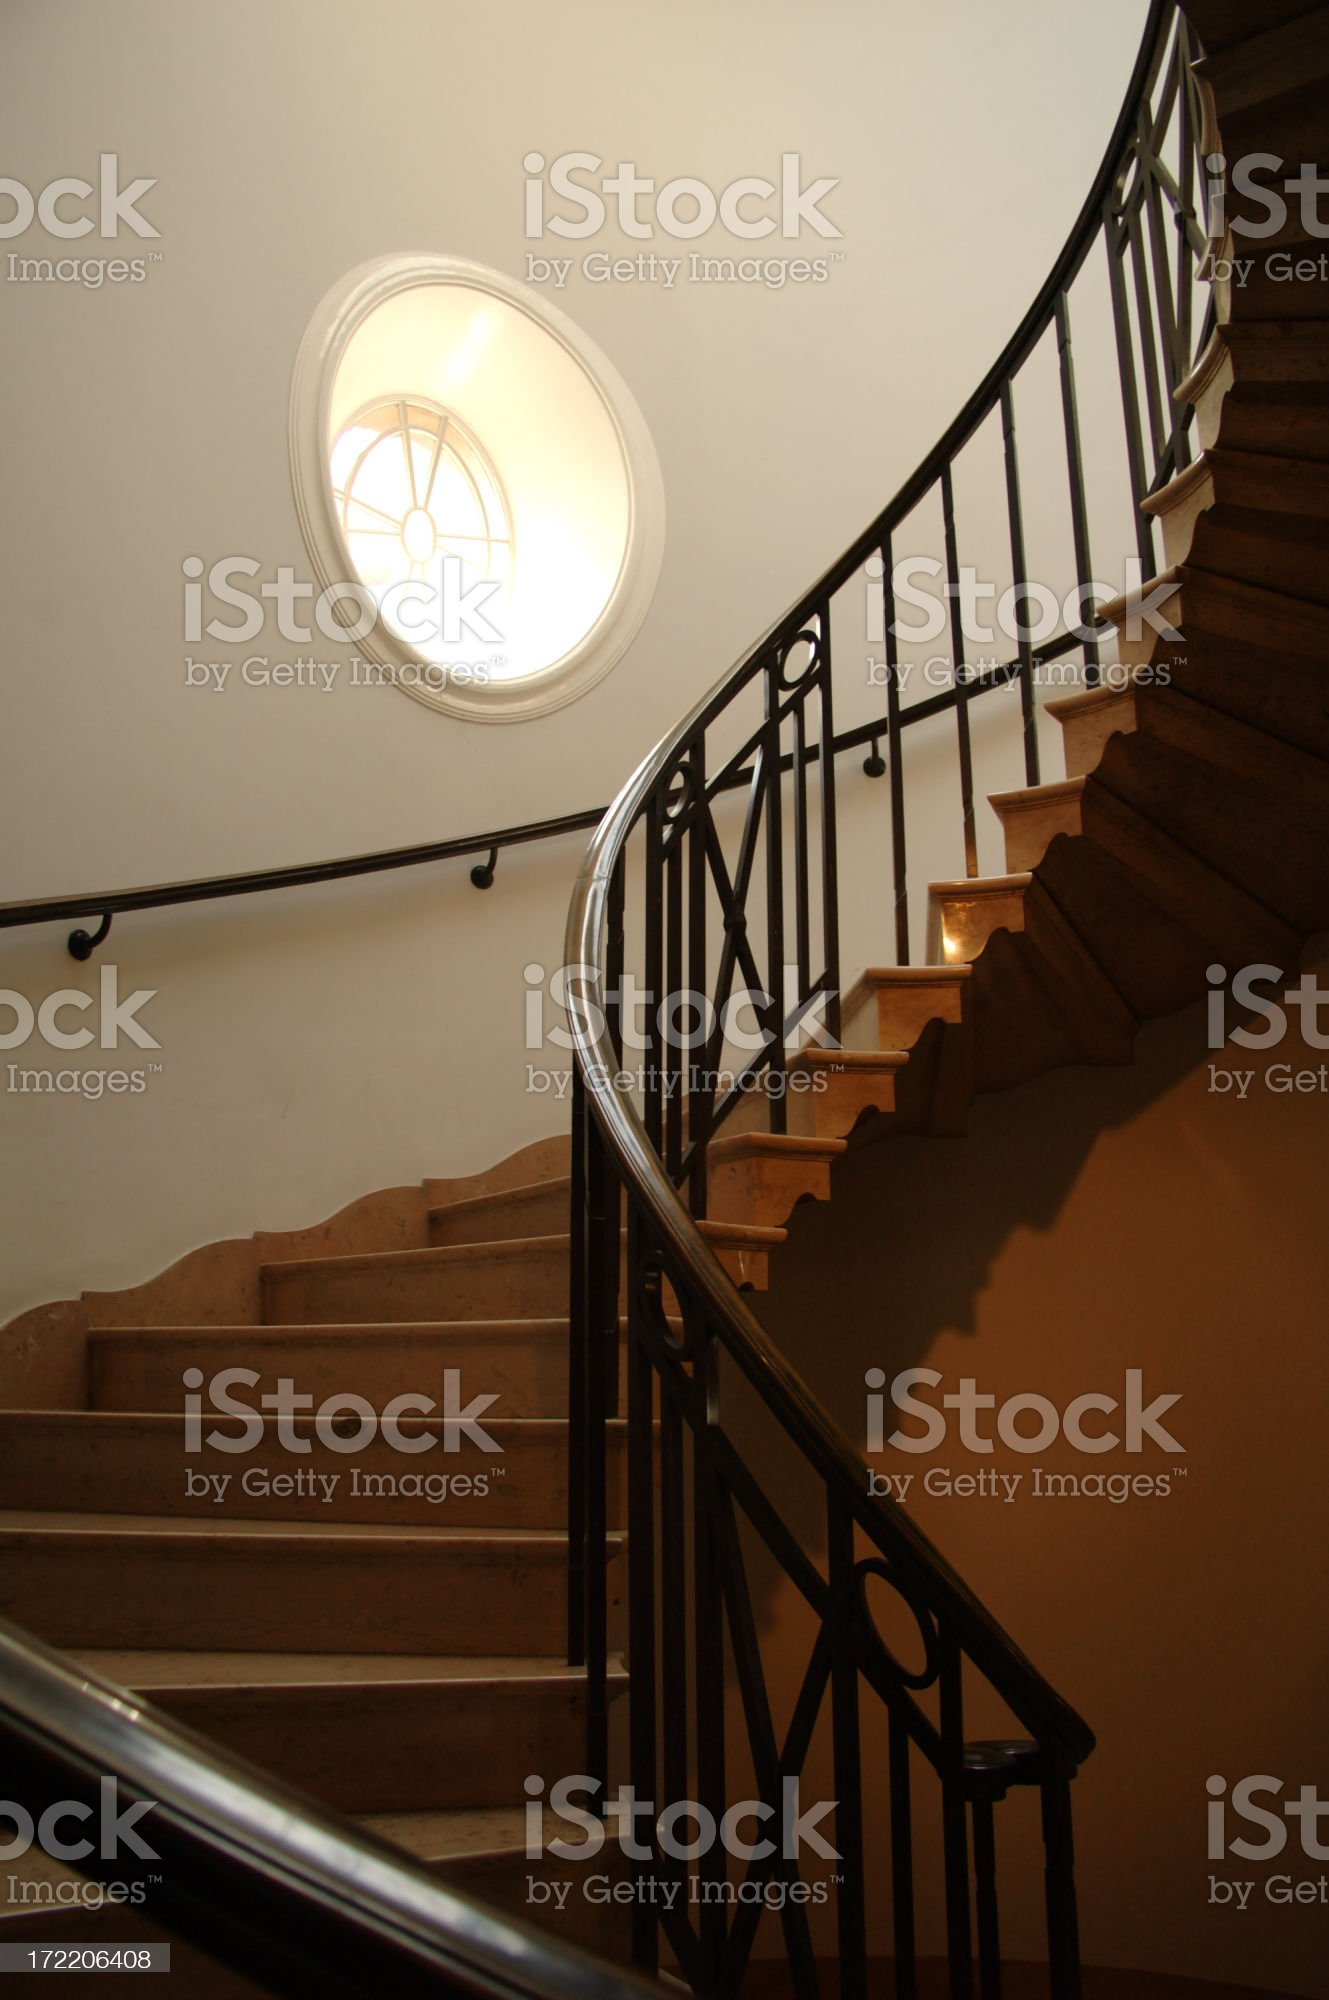 circle of light-spiral staircase royalty-free stock photo